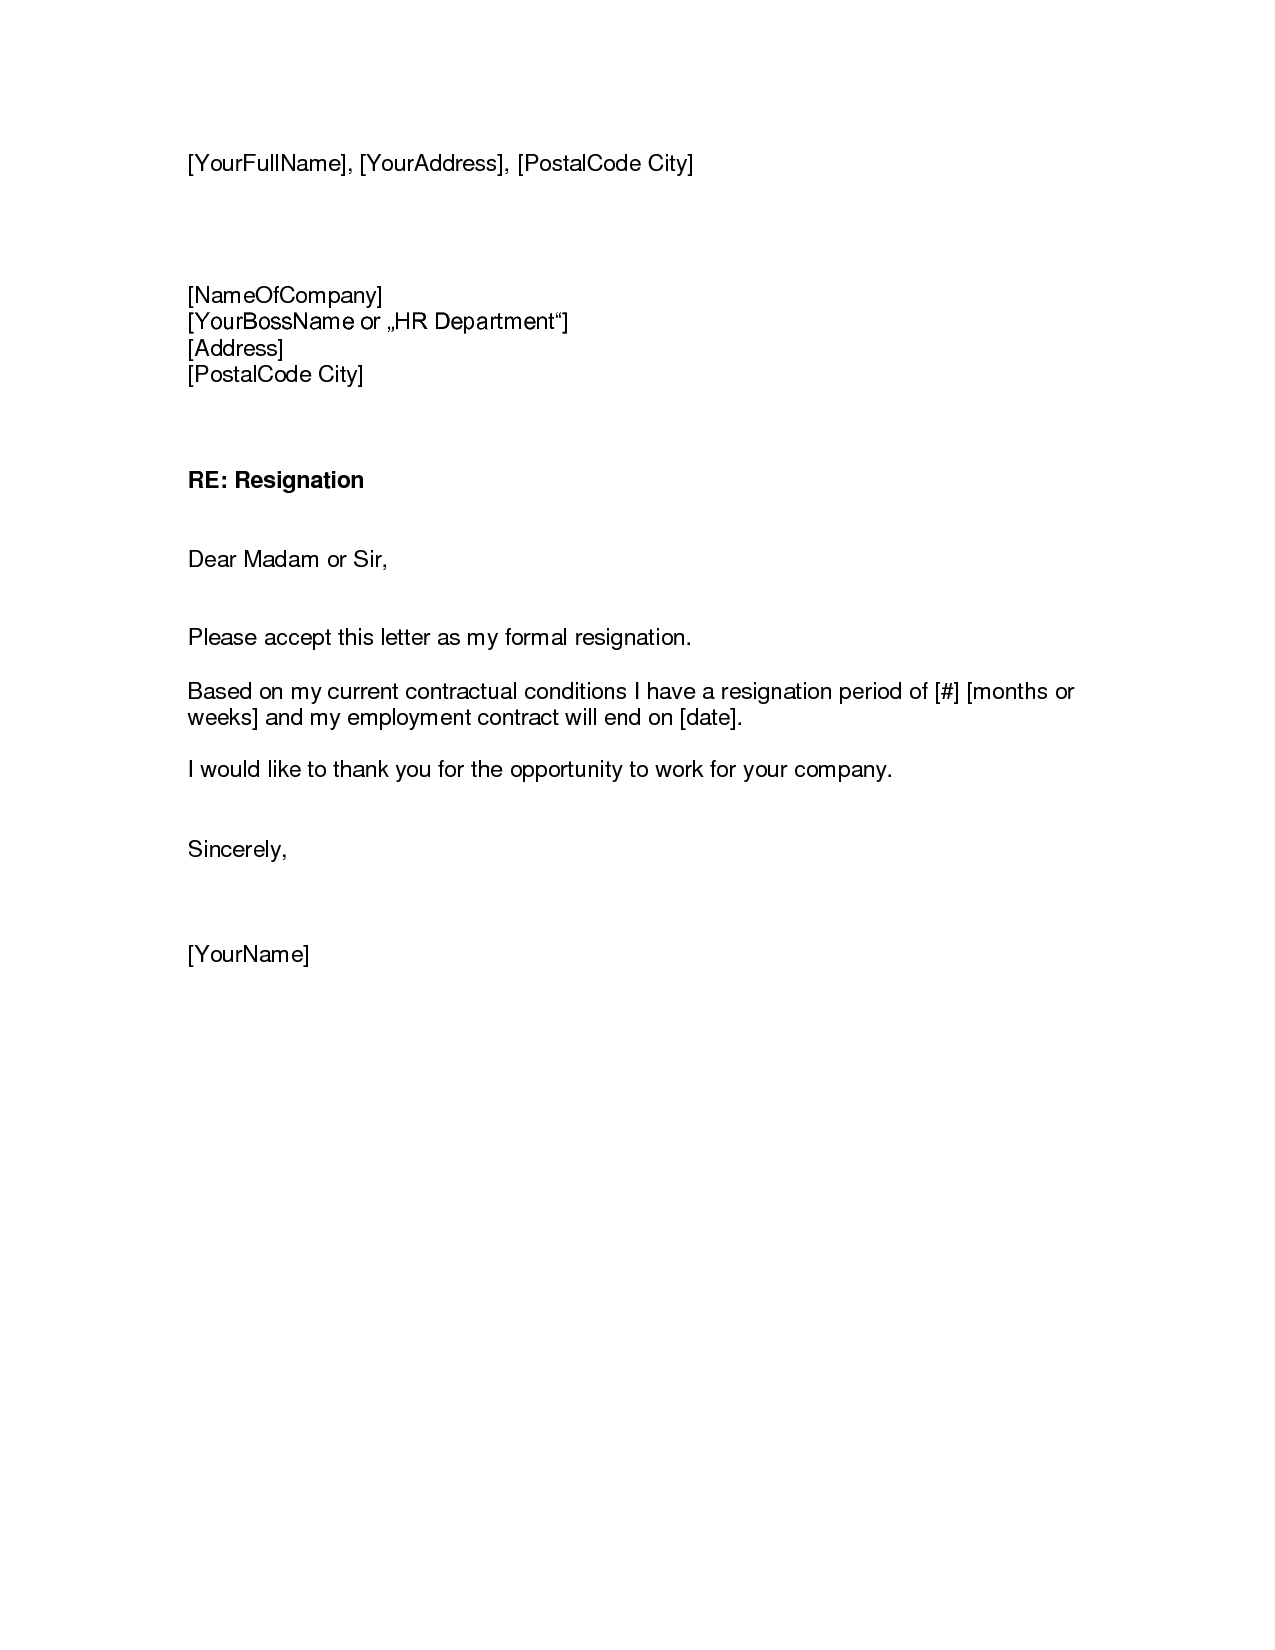 Sample Resignation Letter Template 2 Resignation Letter Format: Full Name  Free Resignation Letter .  Letter Of Resignation Template Word